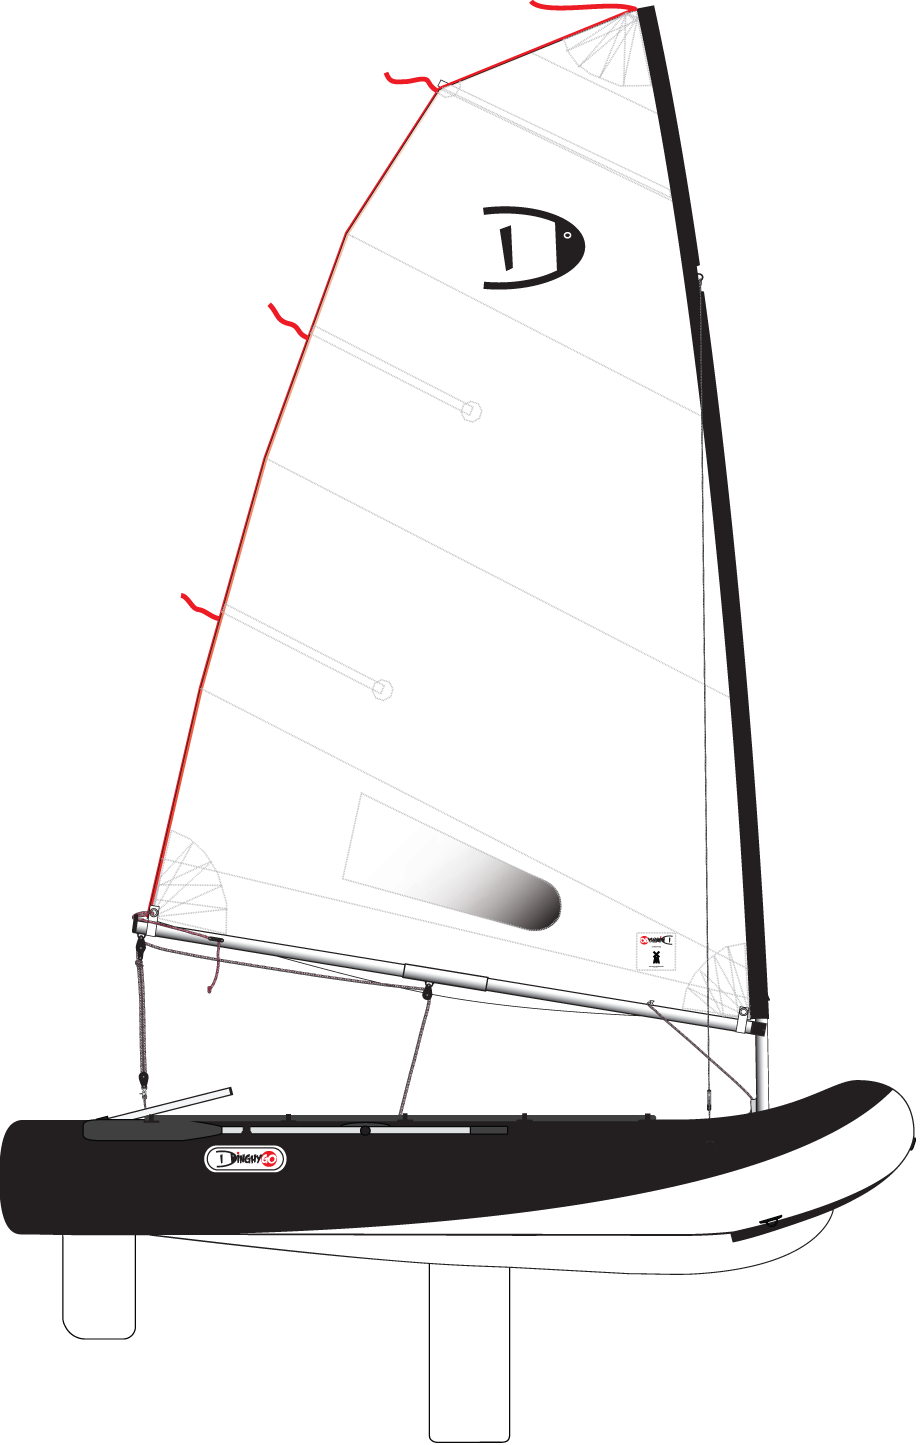 DinghyGo Orca (levering april 2019)